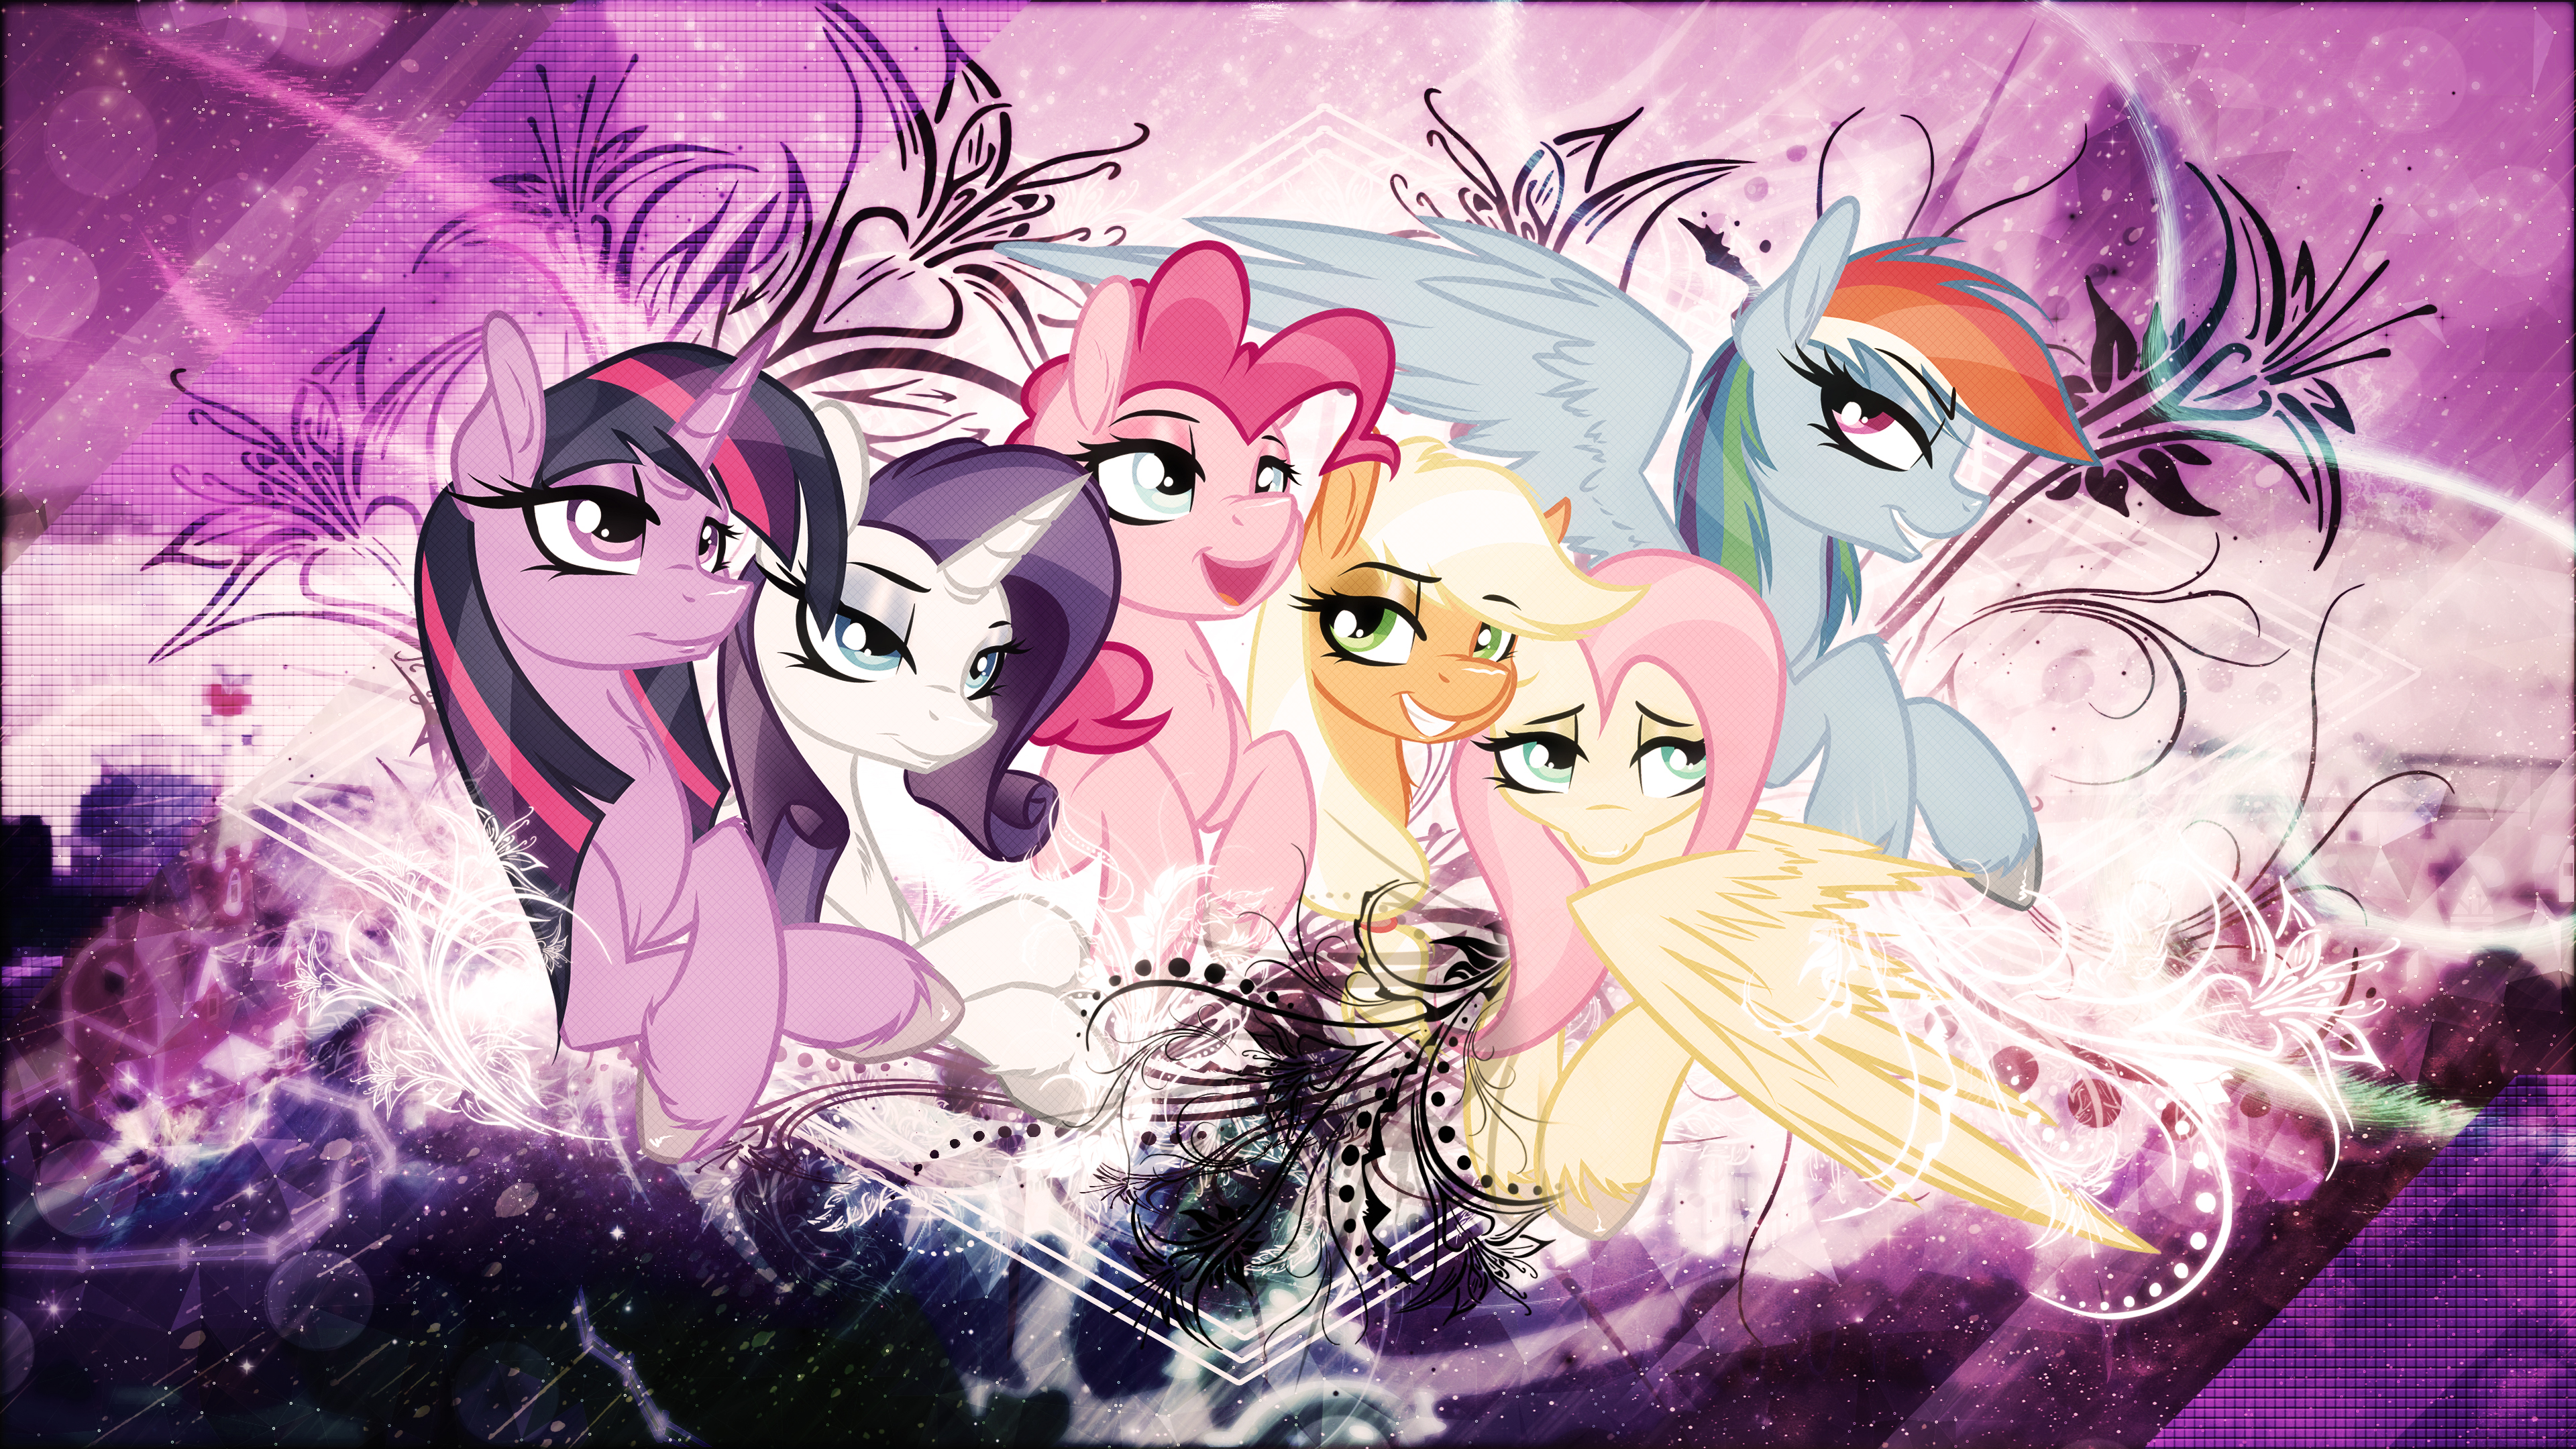 Mane6 by Foxy-Noxy, skrayp and StrachAttack